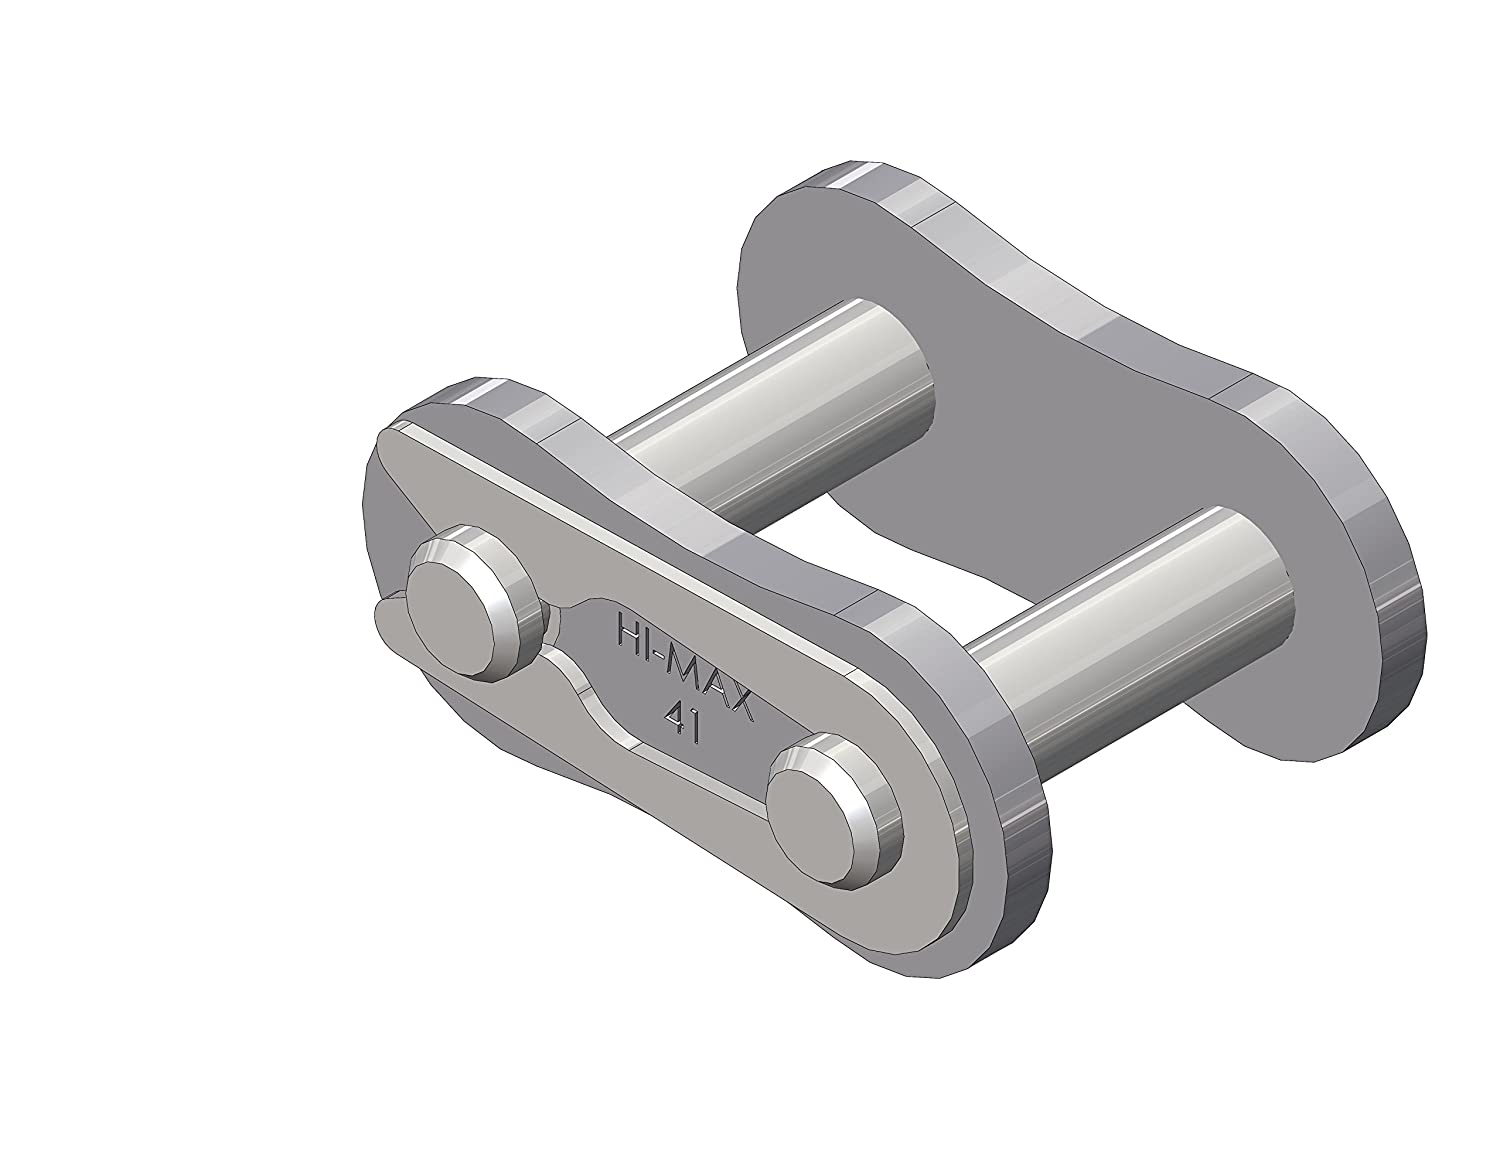 Senqcia Hi-Max 41HMCL Connecting Link, Spring Clip Type, ASME/ANSI Standard Roller Chain, Single Strand, 0.88